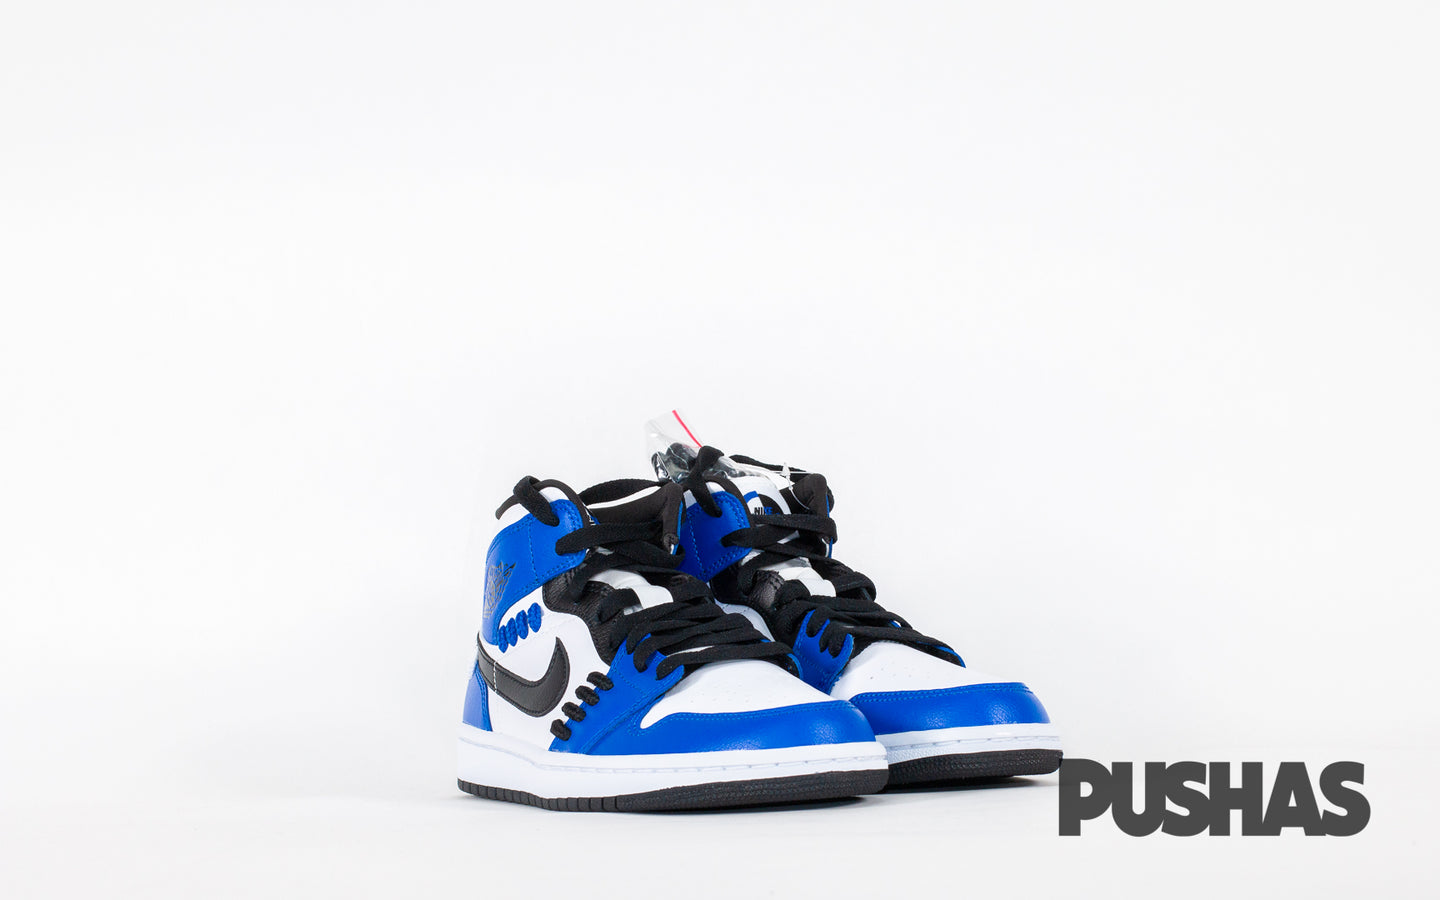 pushas-nike-Air-Jordan-1-Mid-w-Sisterhood